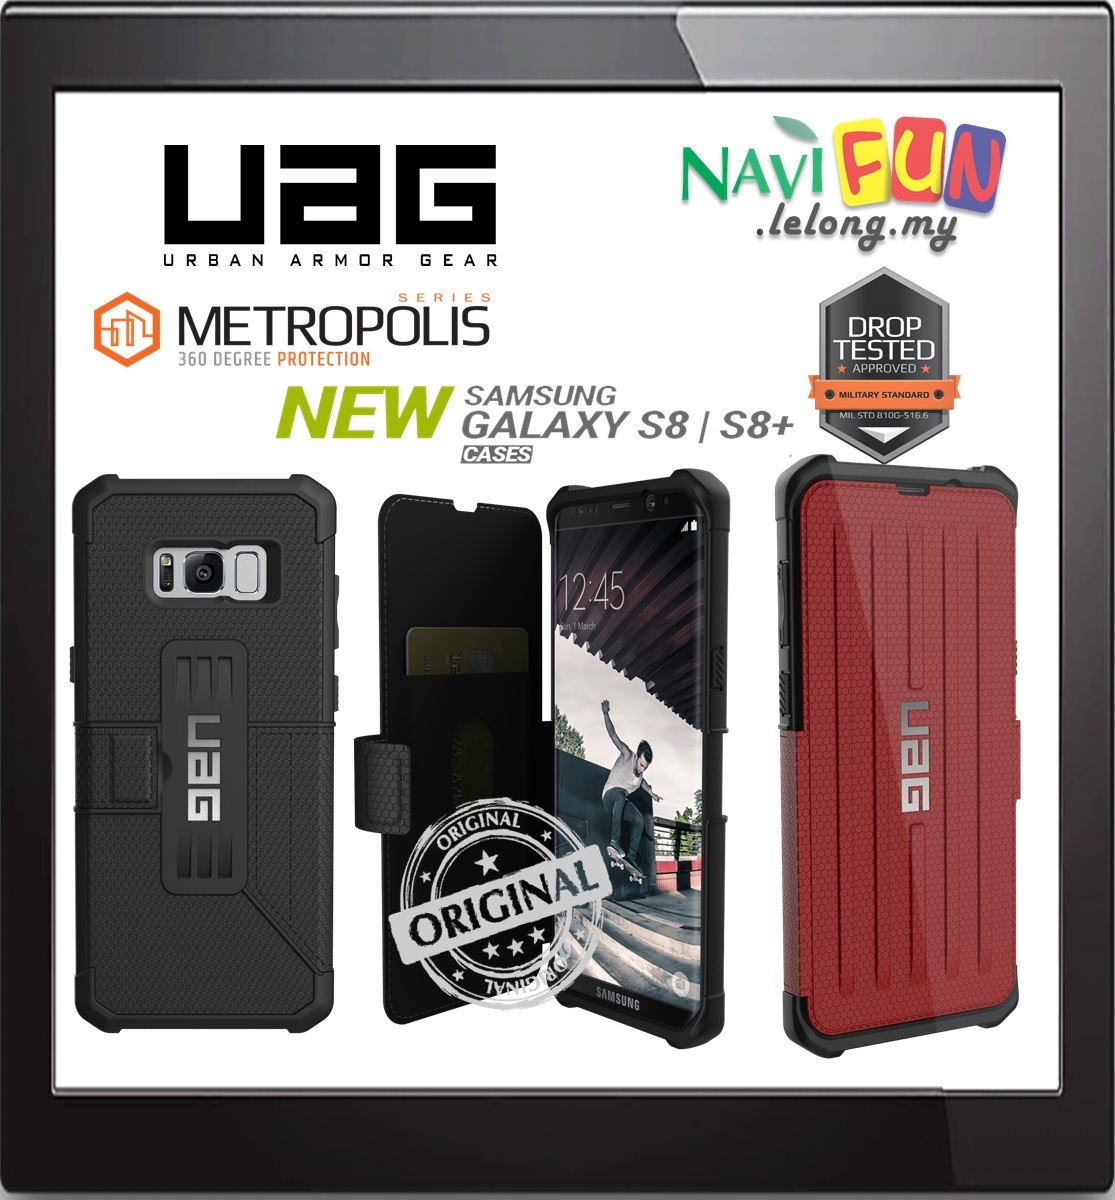 Galaxy s6 cases shop samsung cases online uag urban armor gear - Urban Armor Gear Uag Metropolis Folio Case Samusng S8 Plus